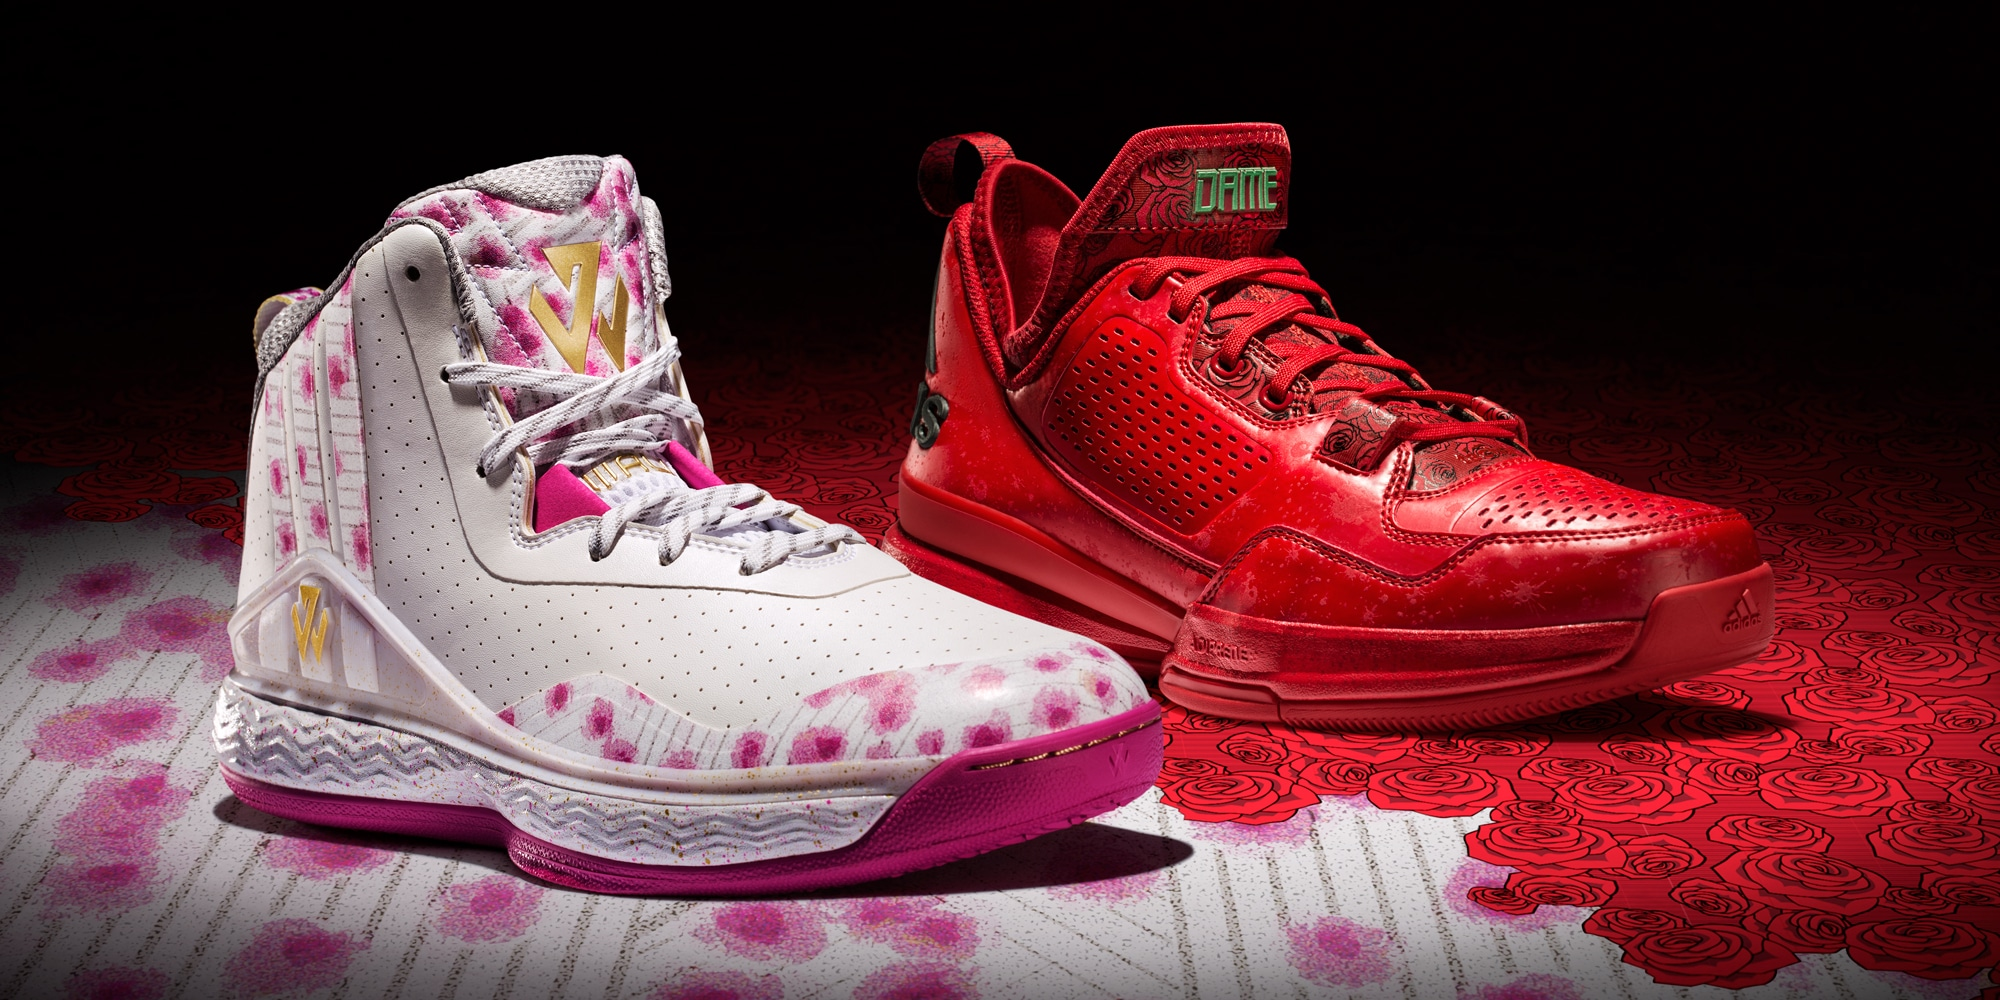 Adidas Releases All-Red D Lillard 1 As Part Of 'Florist City' Pack